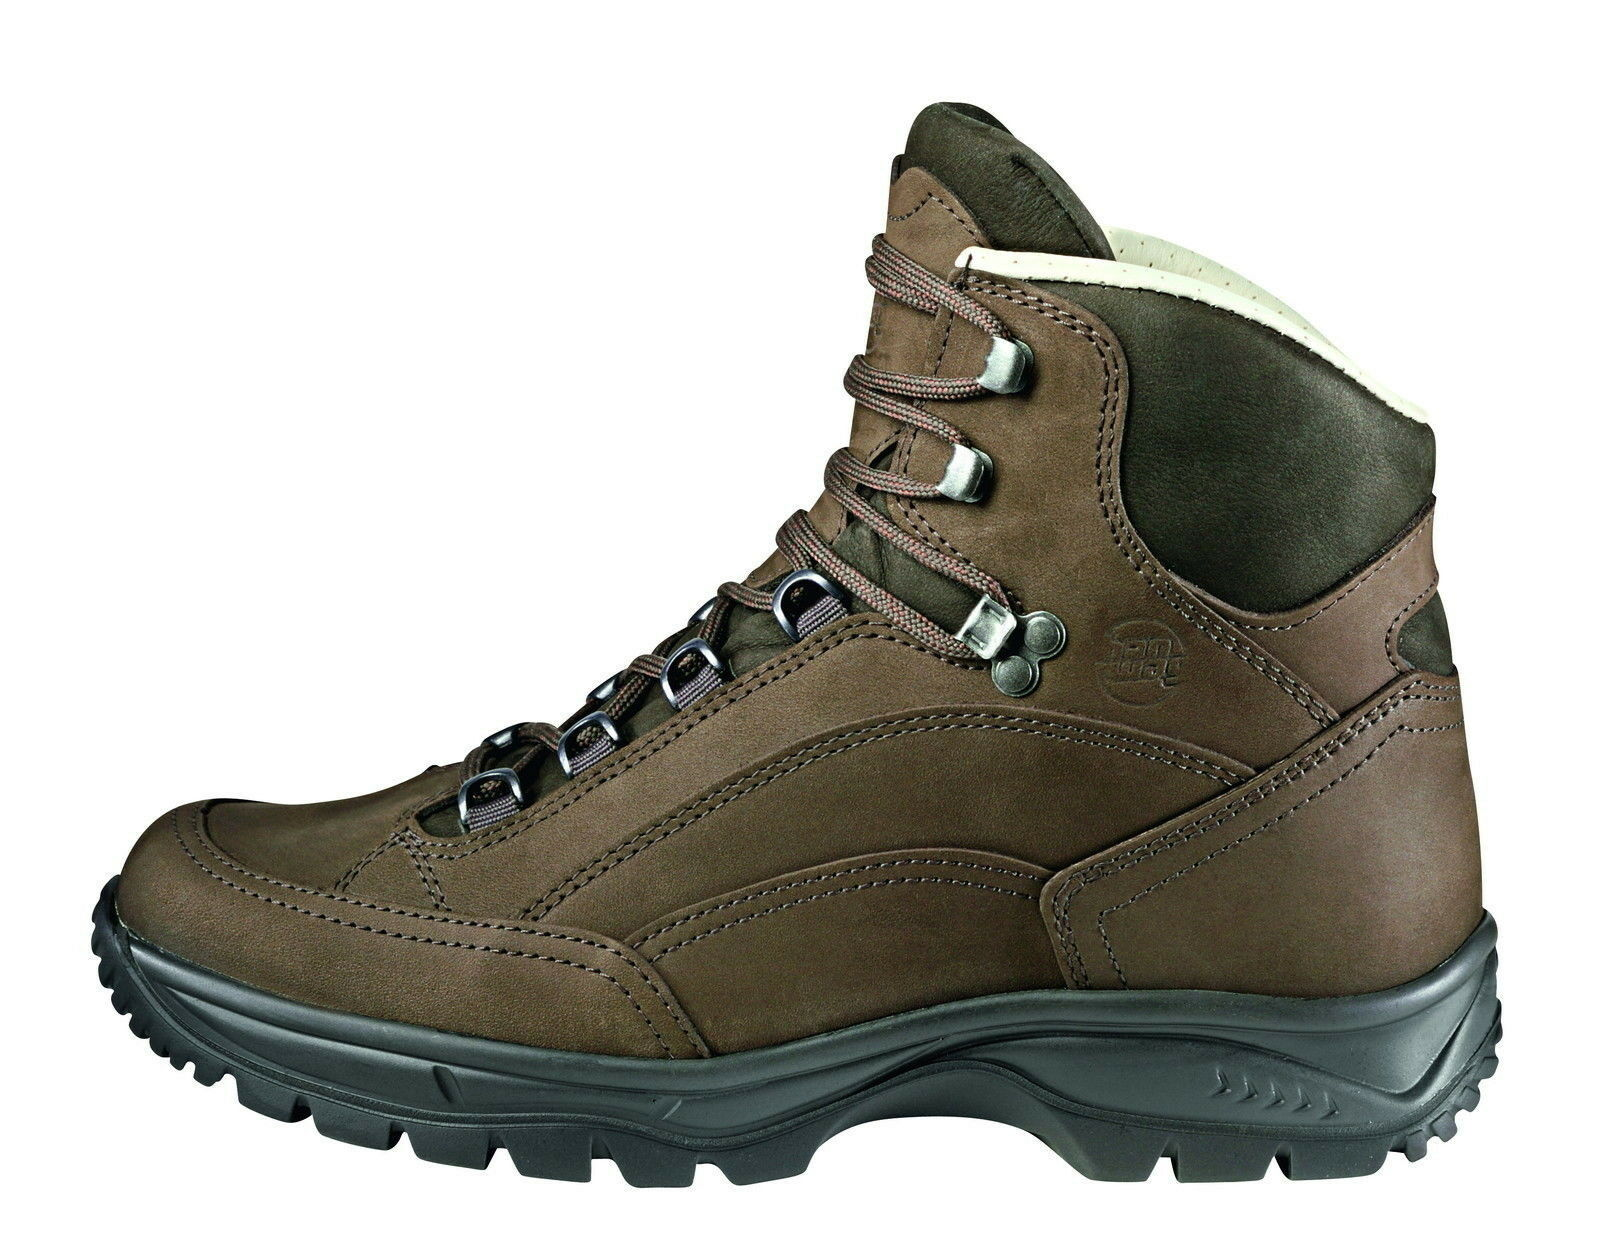 Hanwag Mountain shoes Canyon Men II, Leather Earth Size 7,5 -